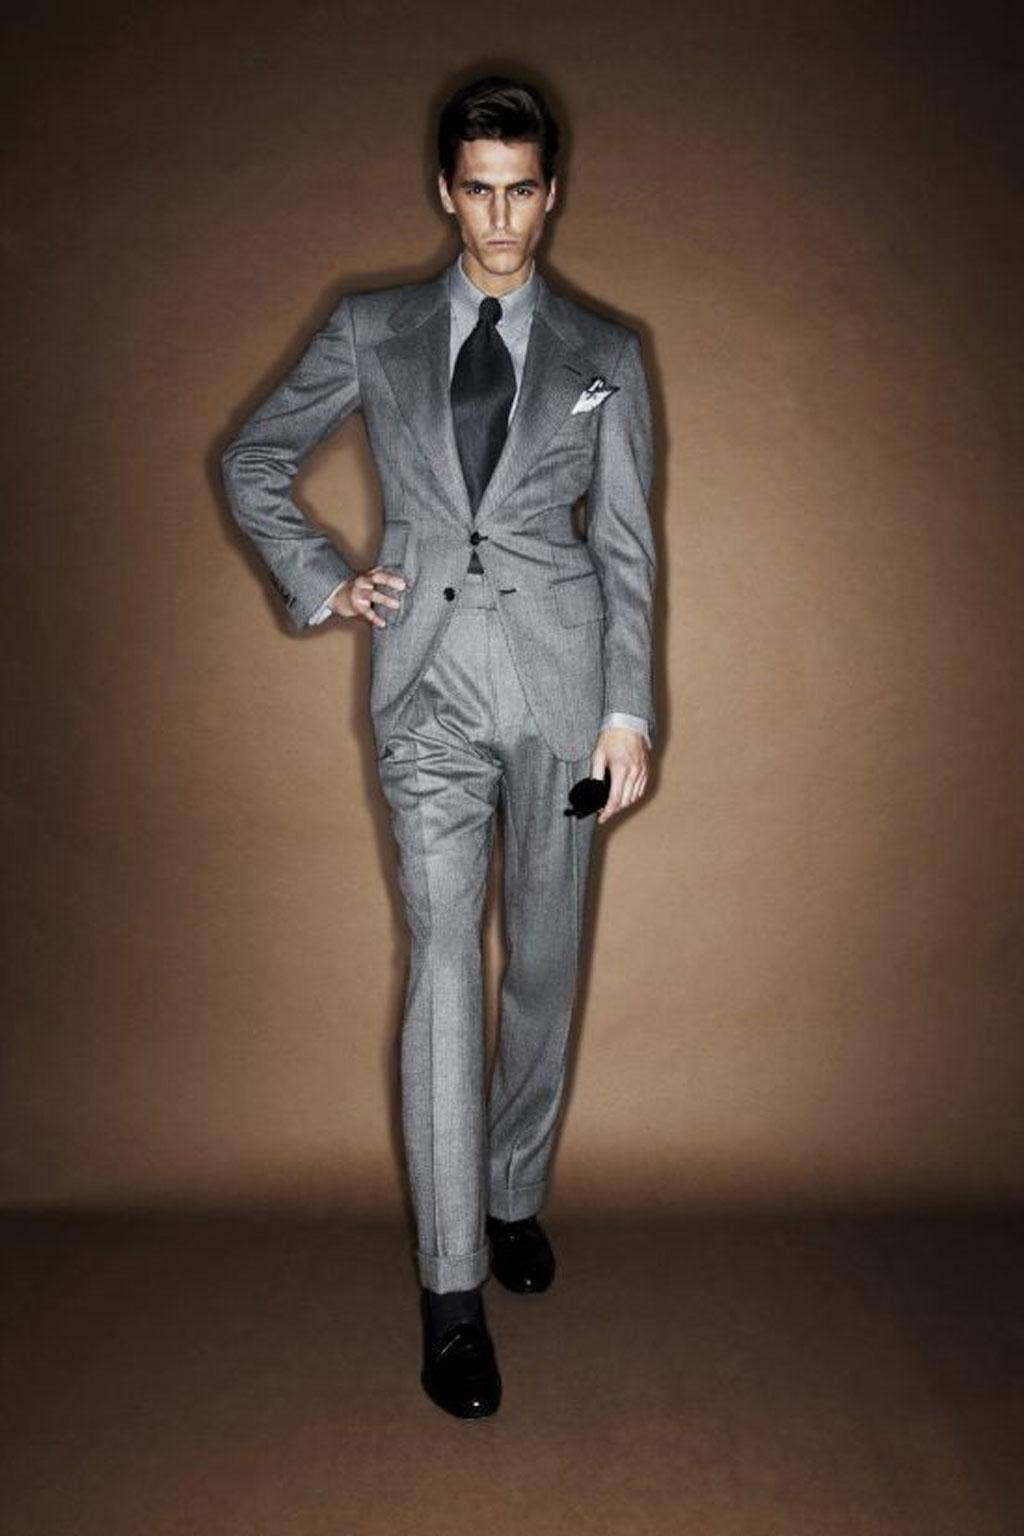 If you're uncertain as to colour, a grey suit is a no-brainer. Carlyle suit £2,950, all Tom Ford, tomford.com